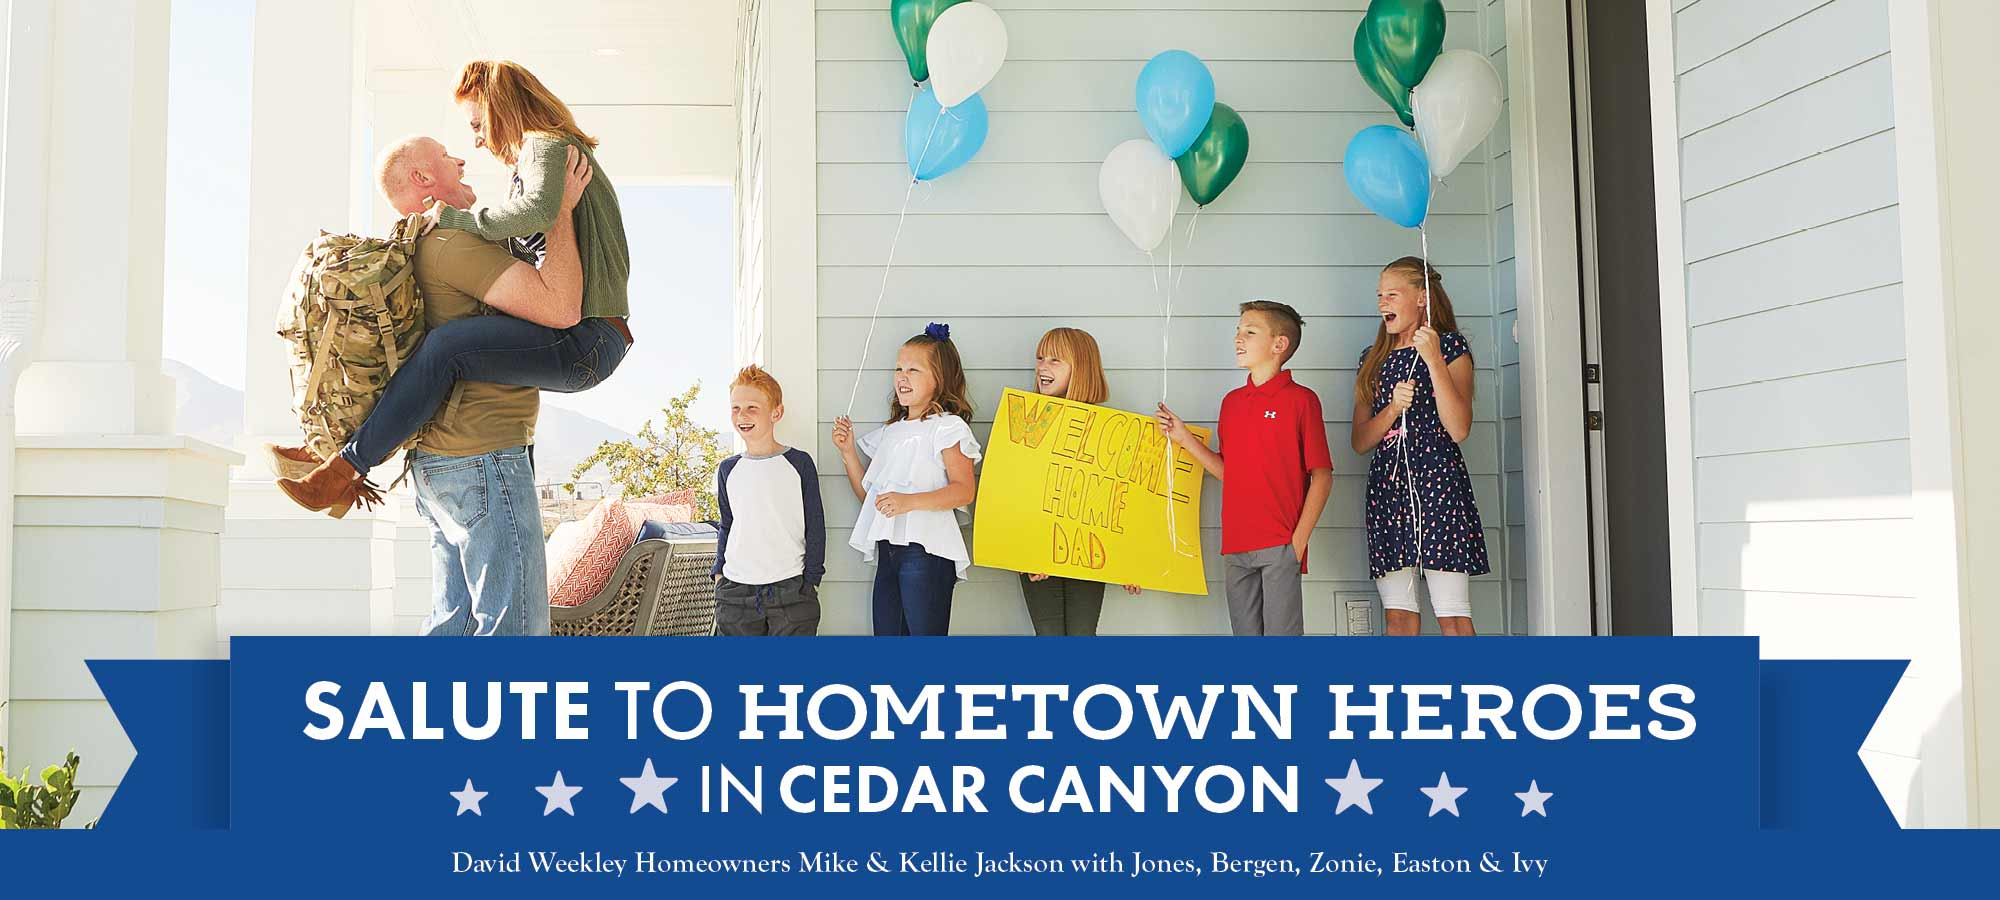 Salute to Hometown Heroes in Cedar Canyon